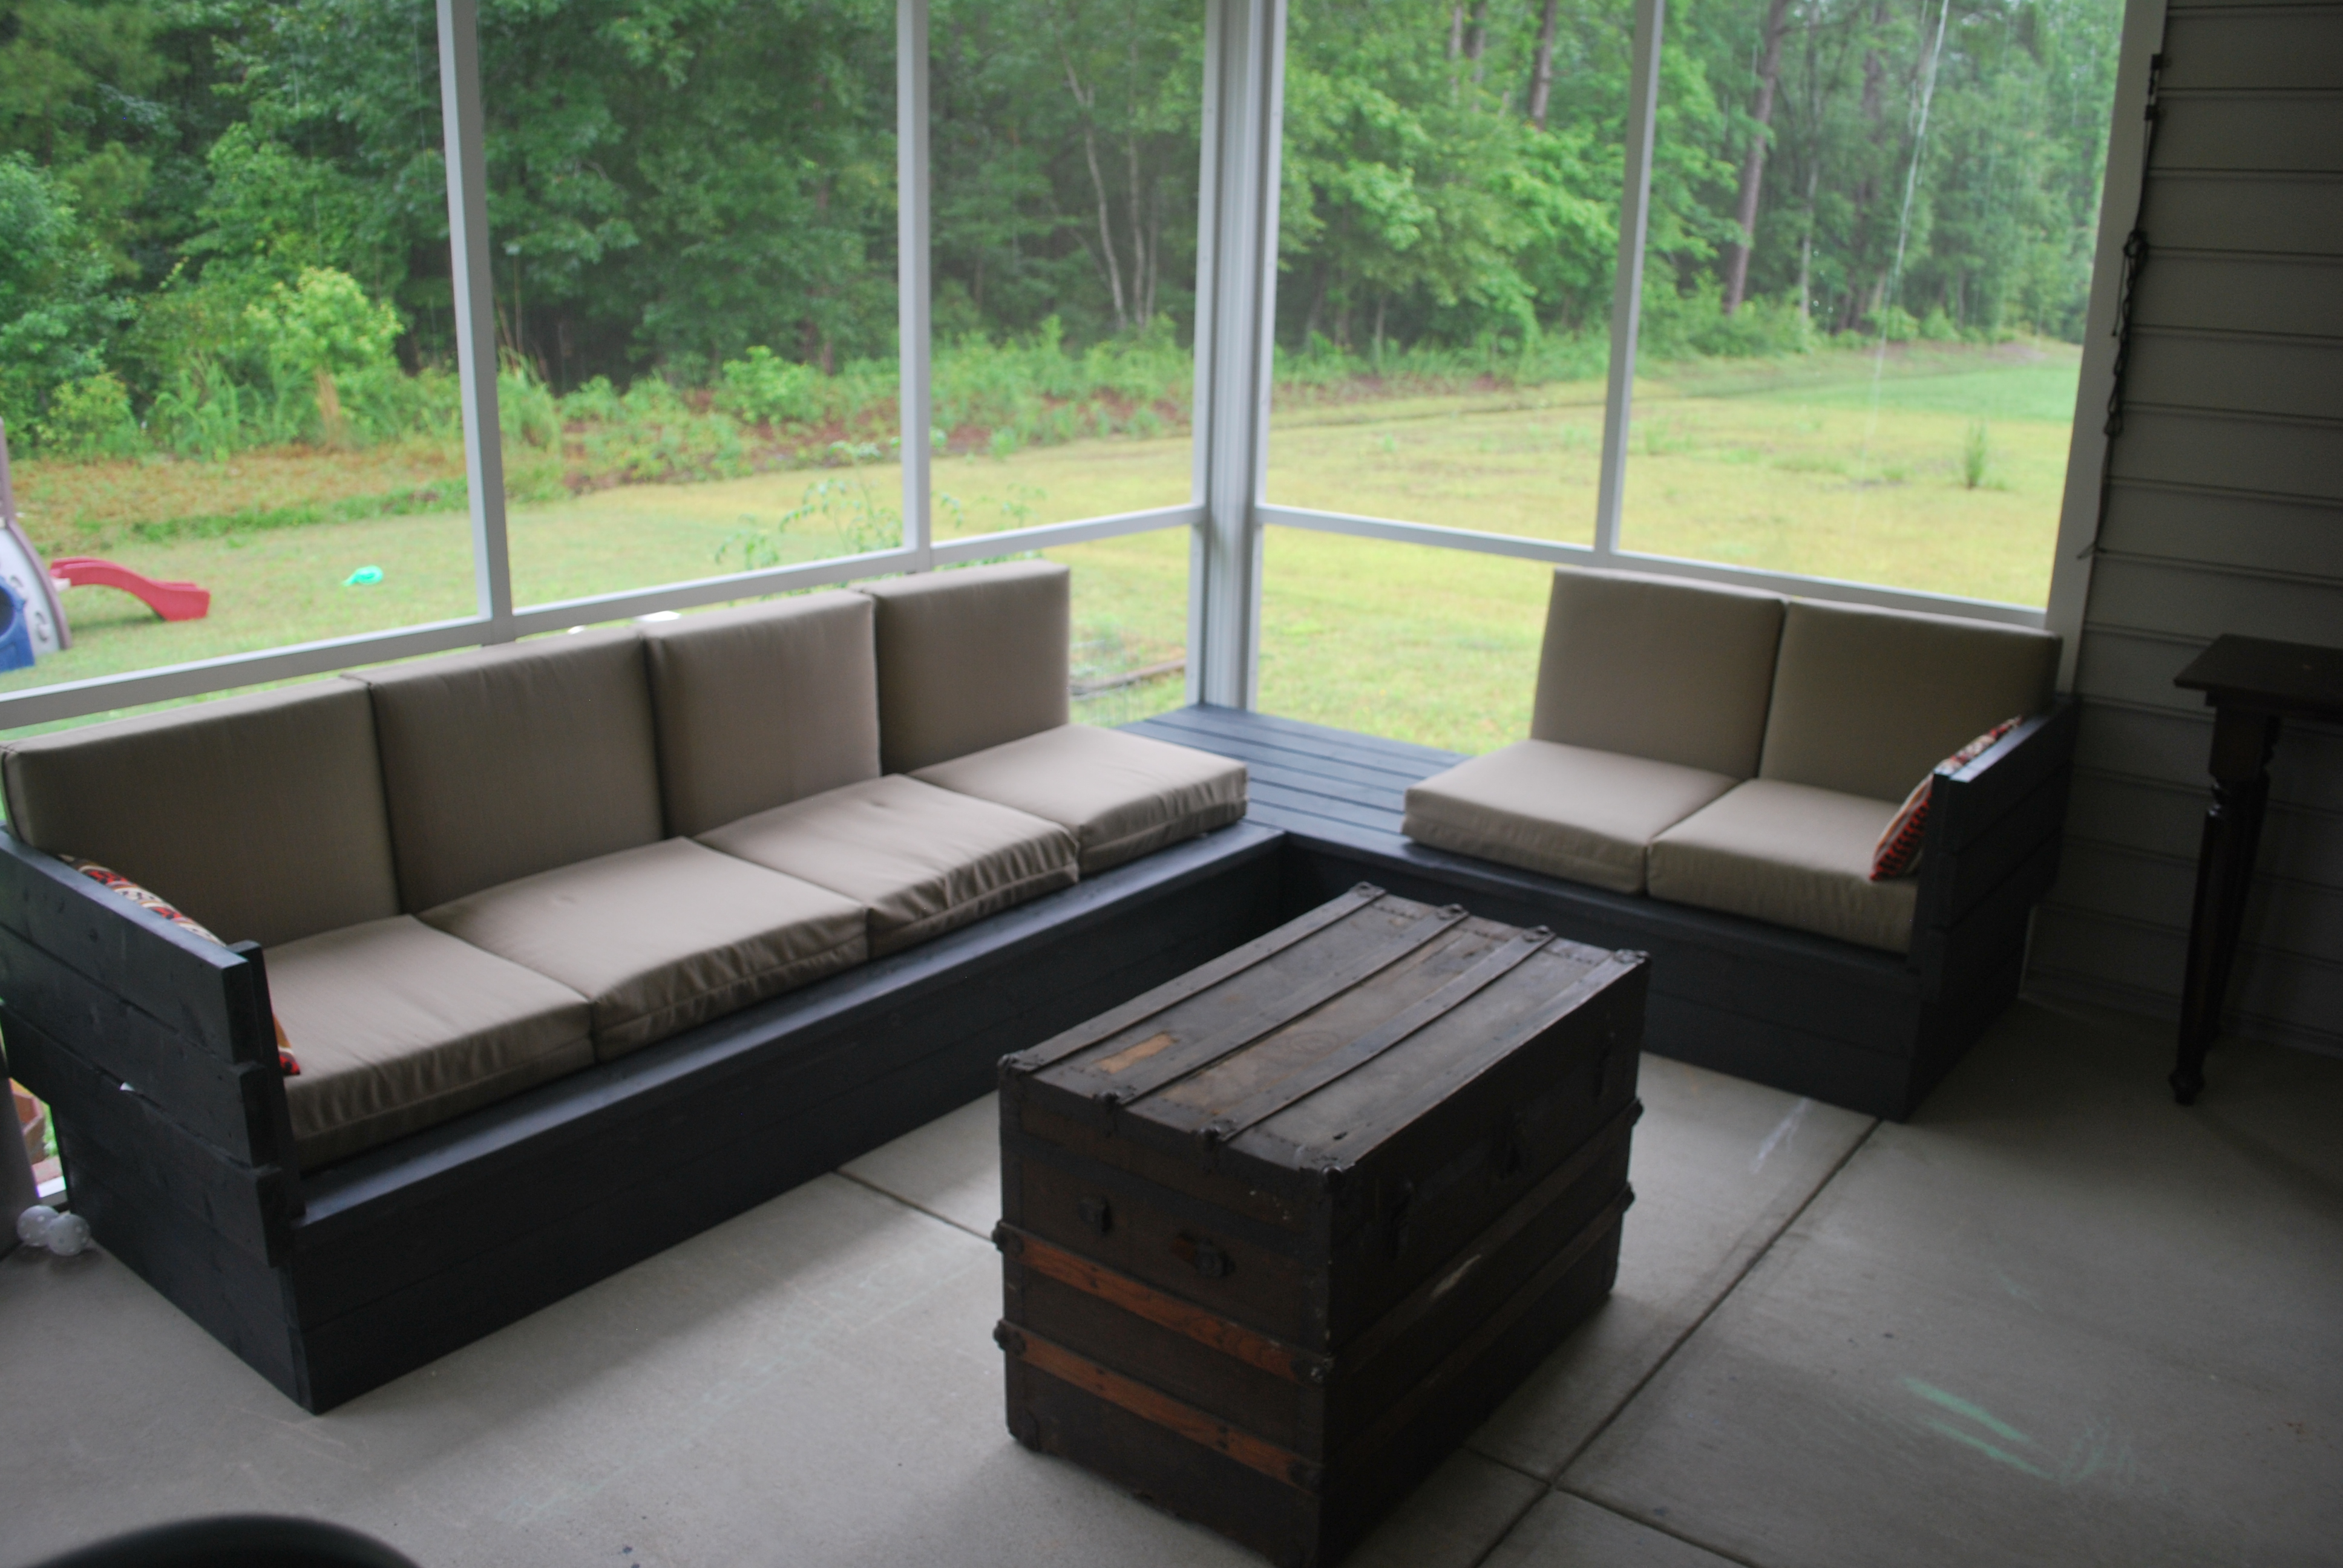 Patio Sectional Plans Ana White | Platform Outdoor Sectional - Diy Projects